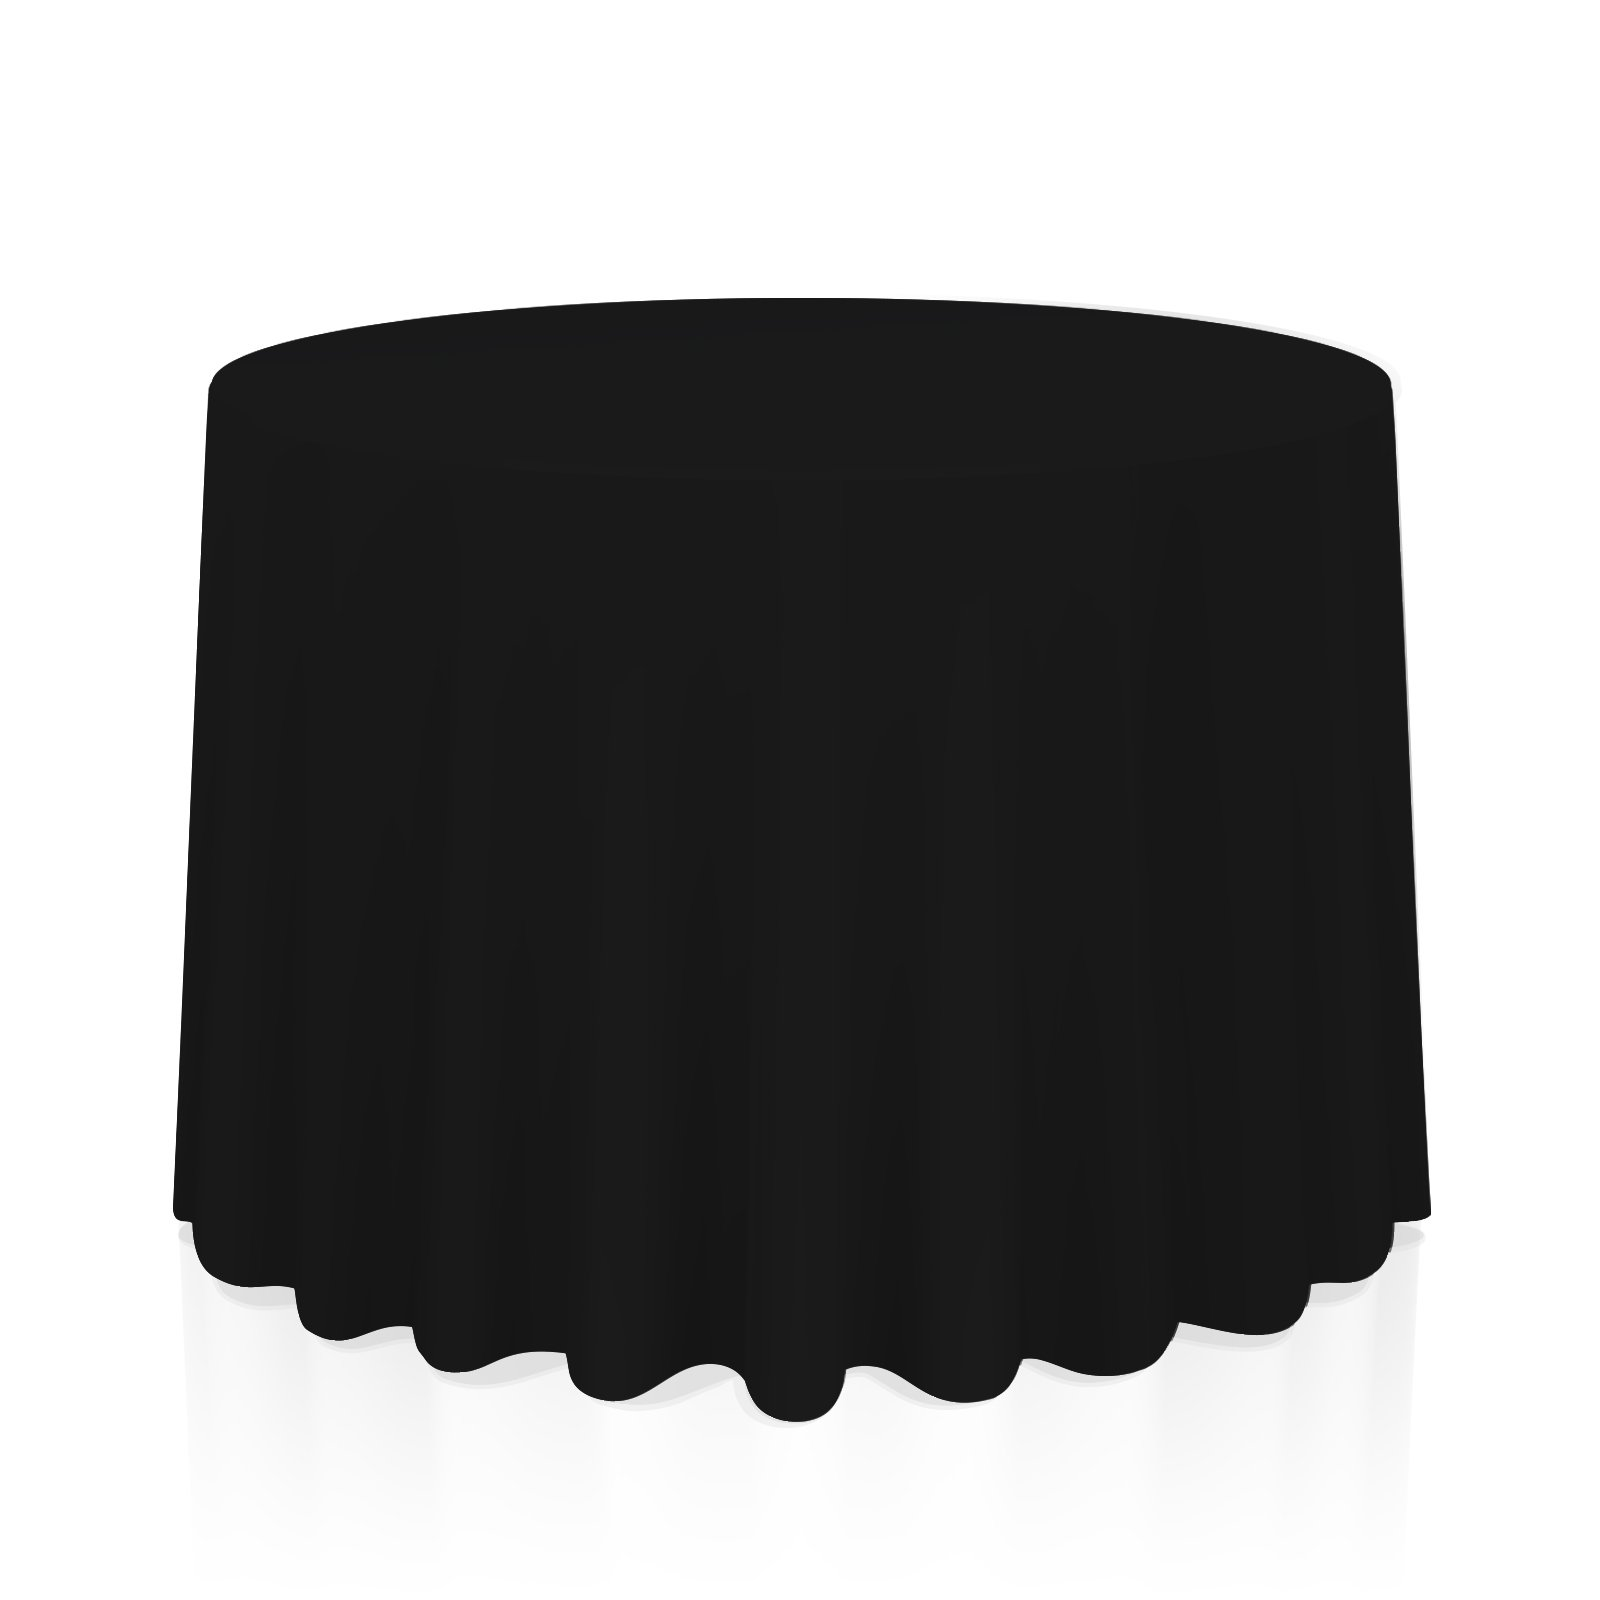 Lann's Linens - 90'' Round Premium Tablecloth for Wedding/Banquet/Restaurant - Polyester Fabric Table Cloth - Black